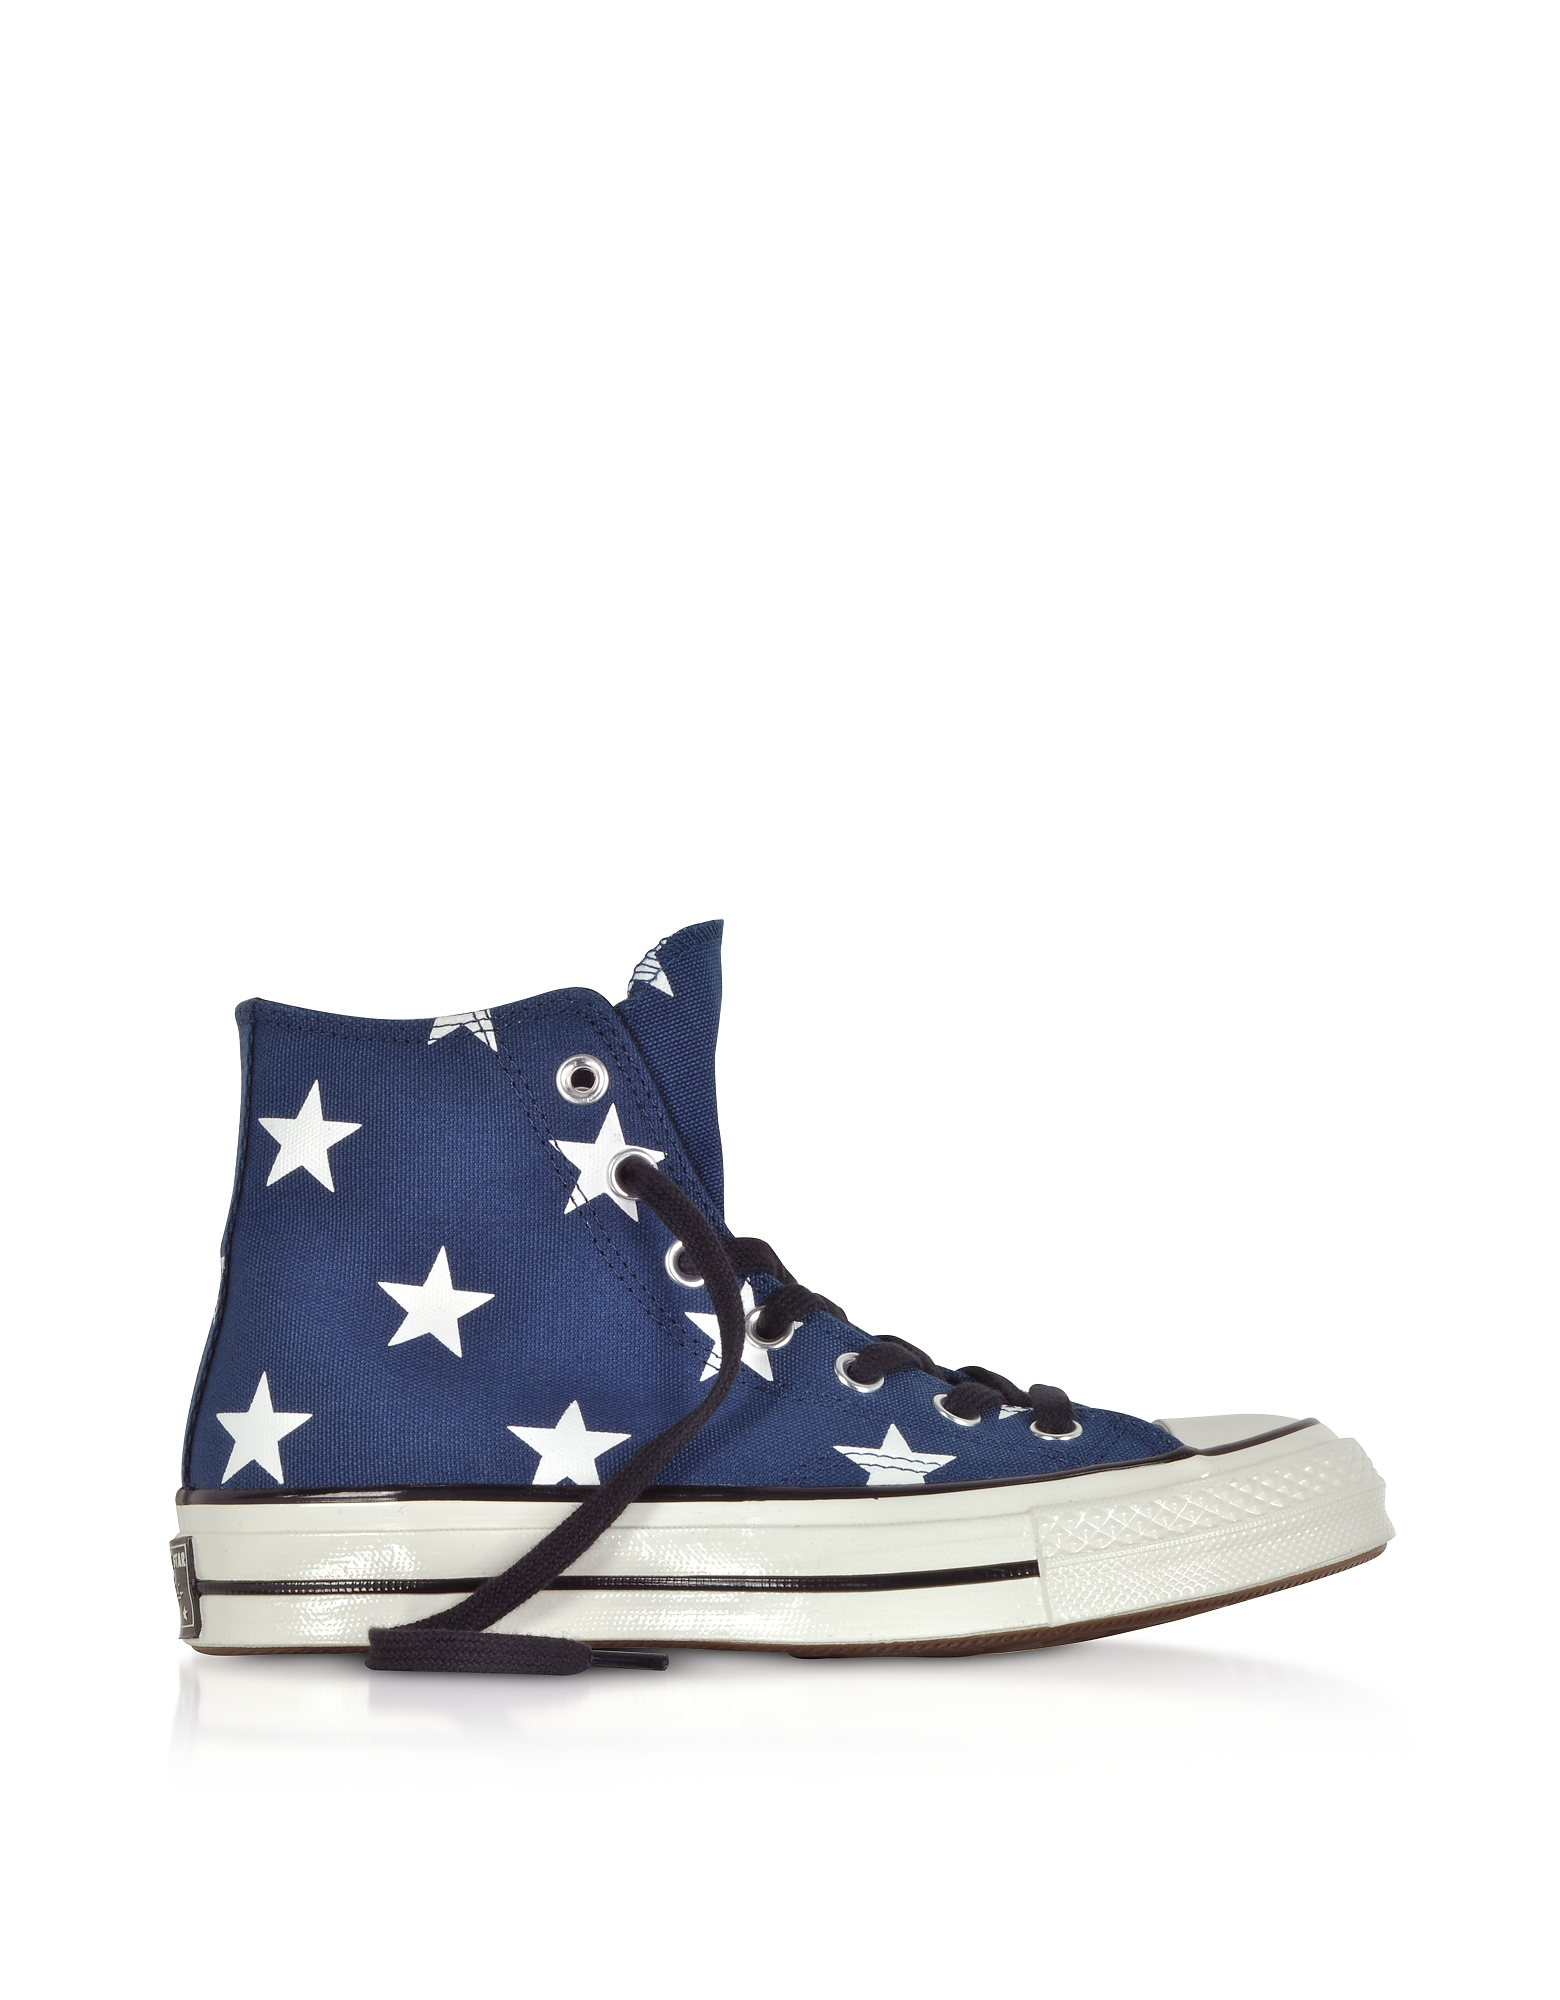 Converse Limited Edition Designer Shoes, Chuck 70 Navy Blue Unisex Sneakers